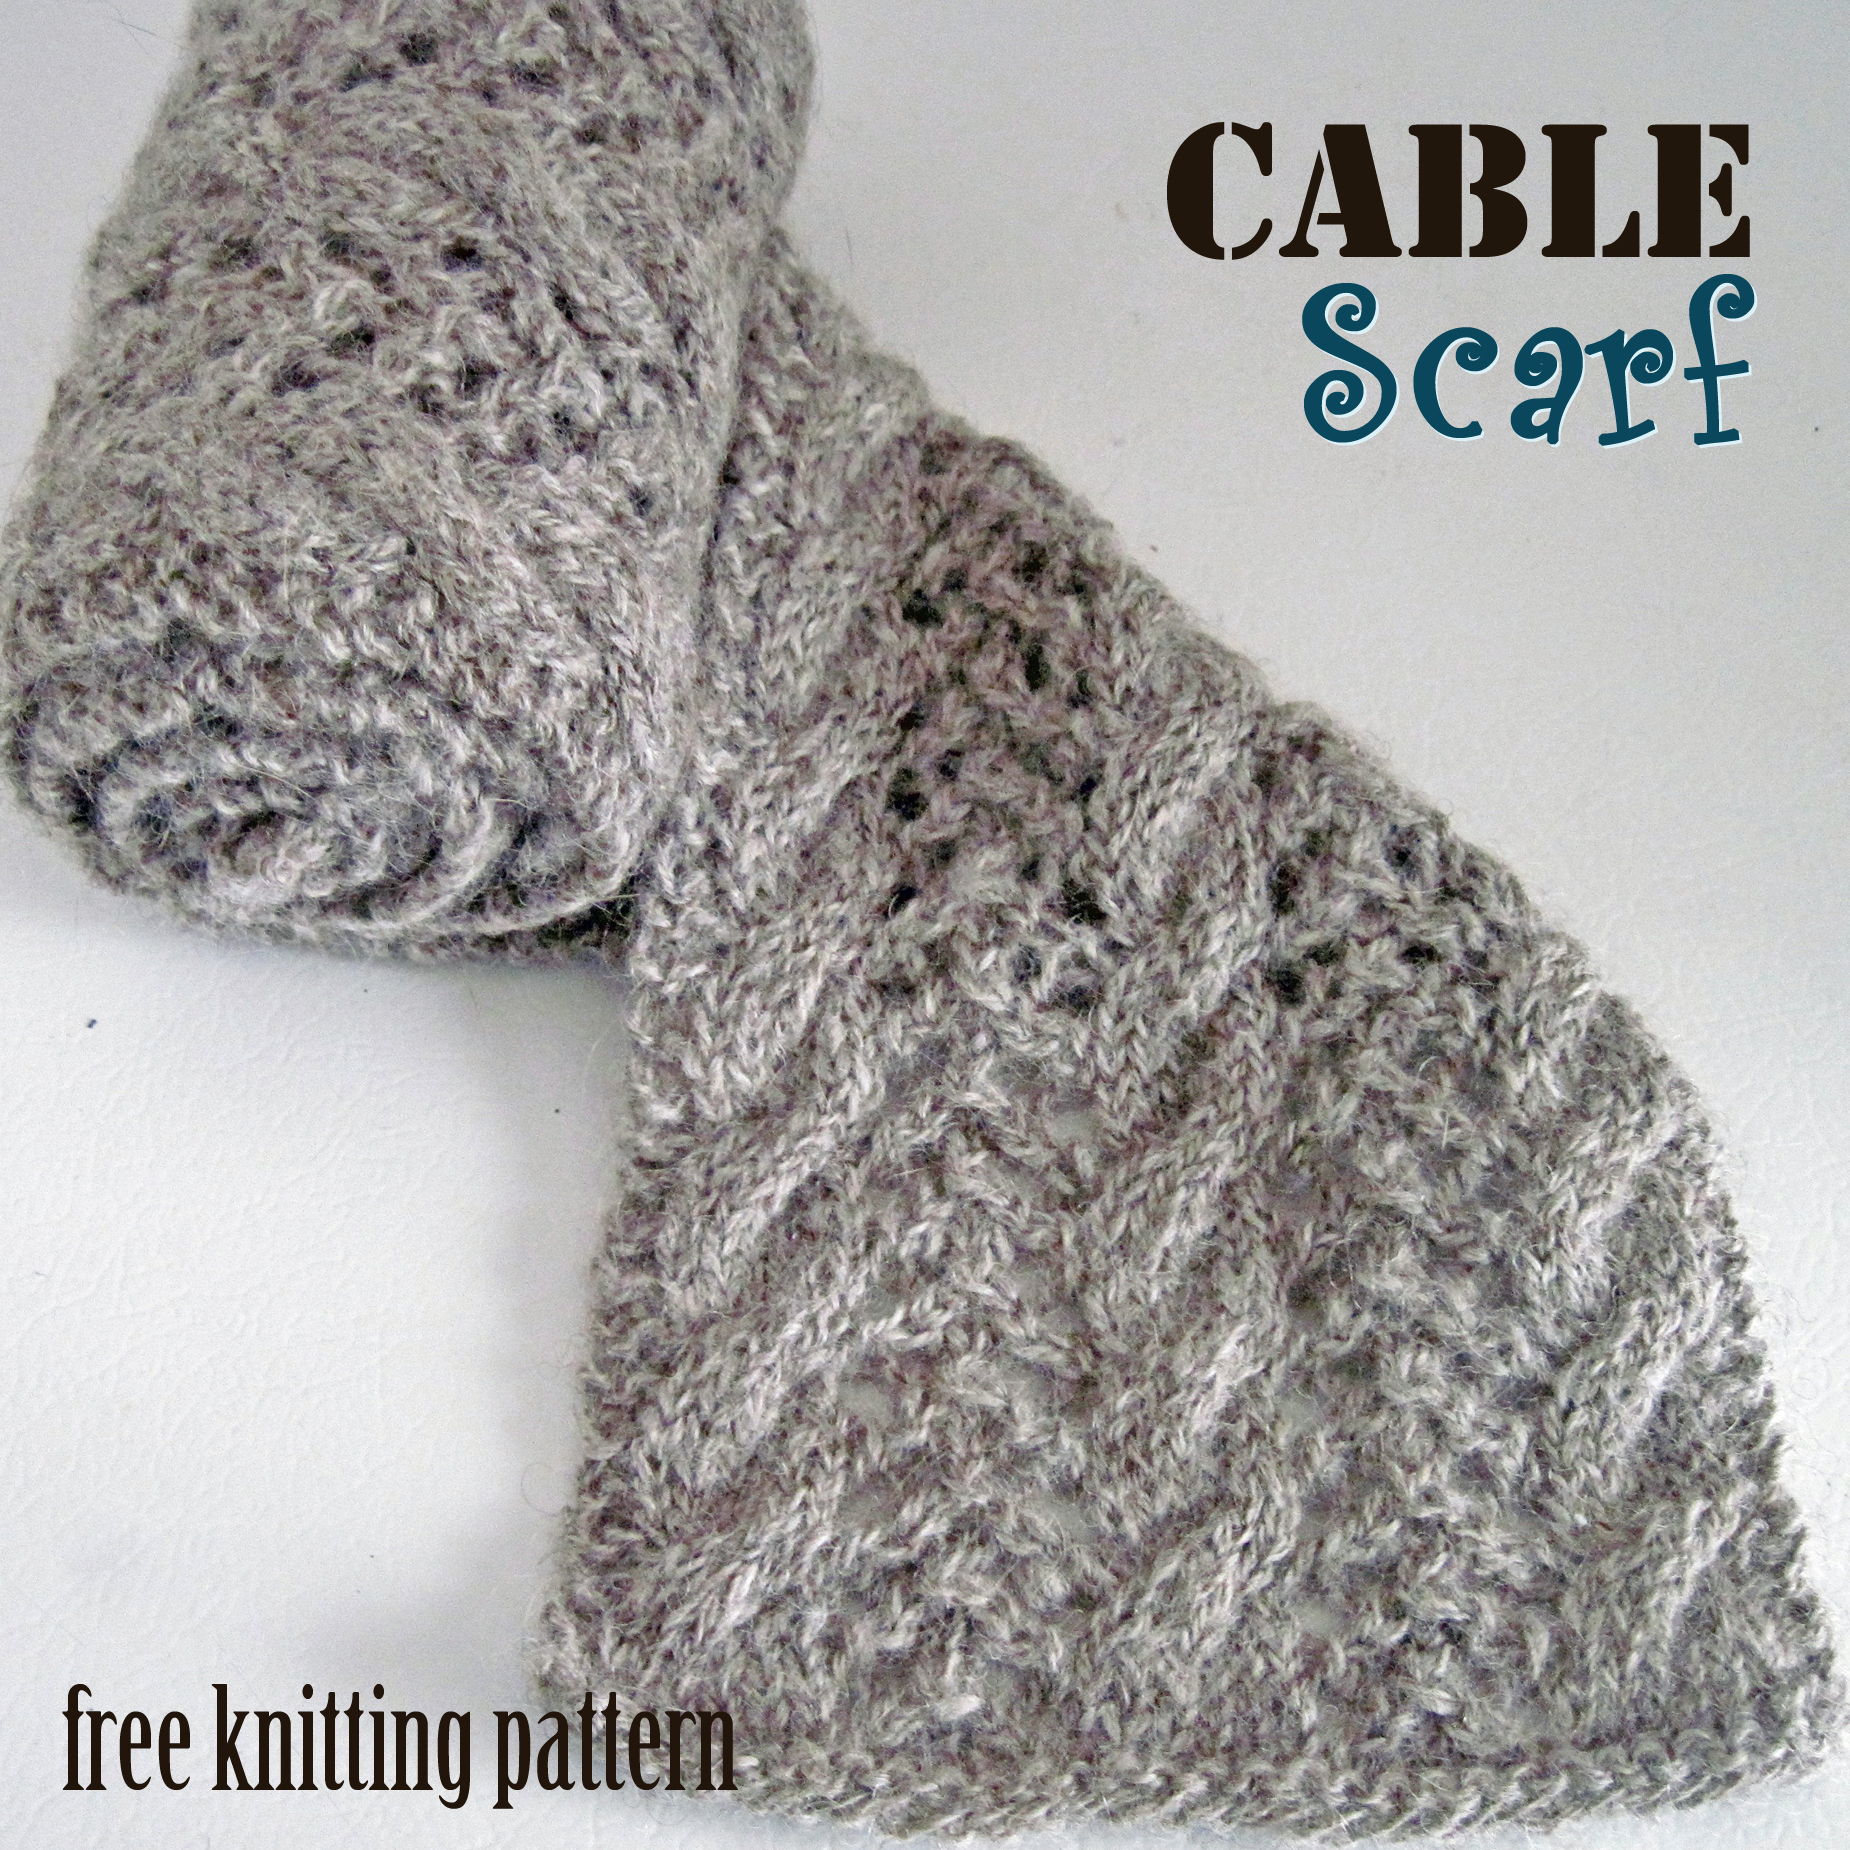 Cable Knit Scarf Pattern Free Free Knitting Pattern Cable Scarf